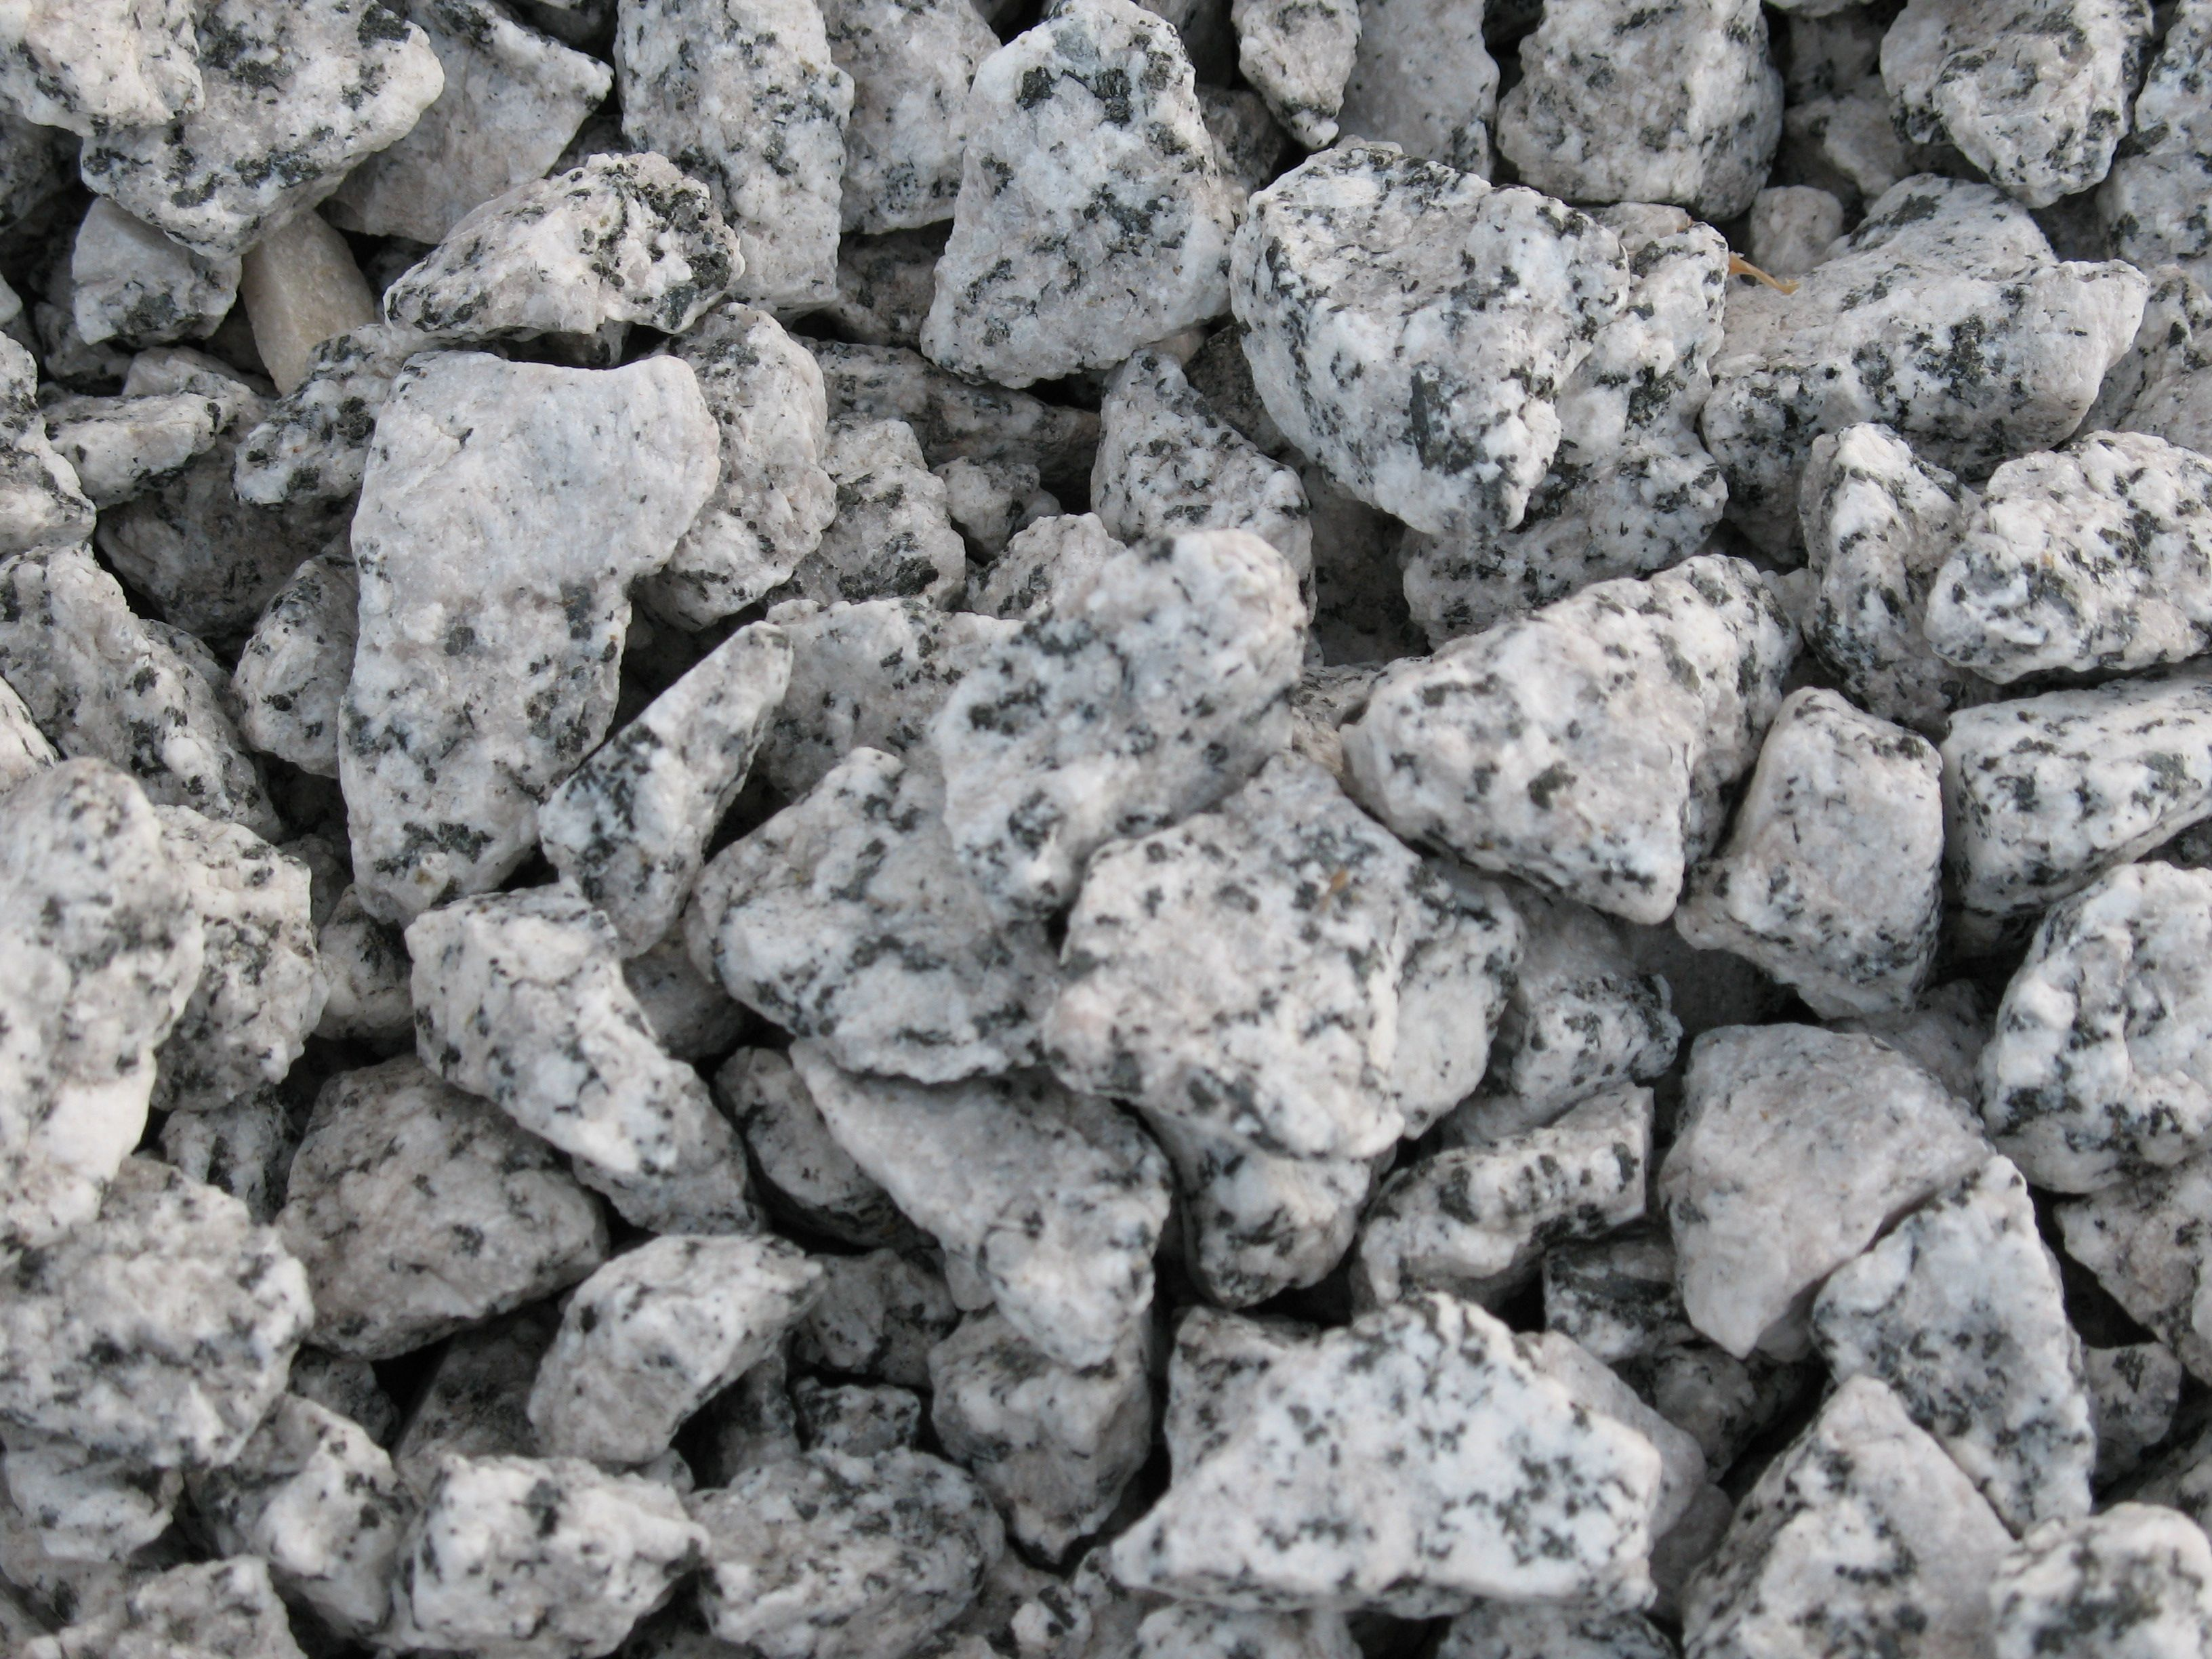 Granite Is A Light Colored Igneous Rock With Grains Large Enough To Be Visible With The Unaided Eye It Forms From The S Igneous Rock Igneous Metamorphic Rocks